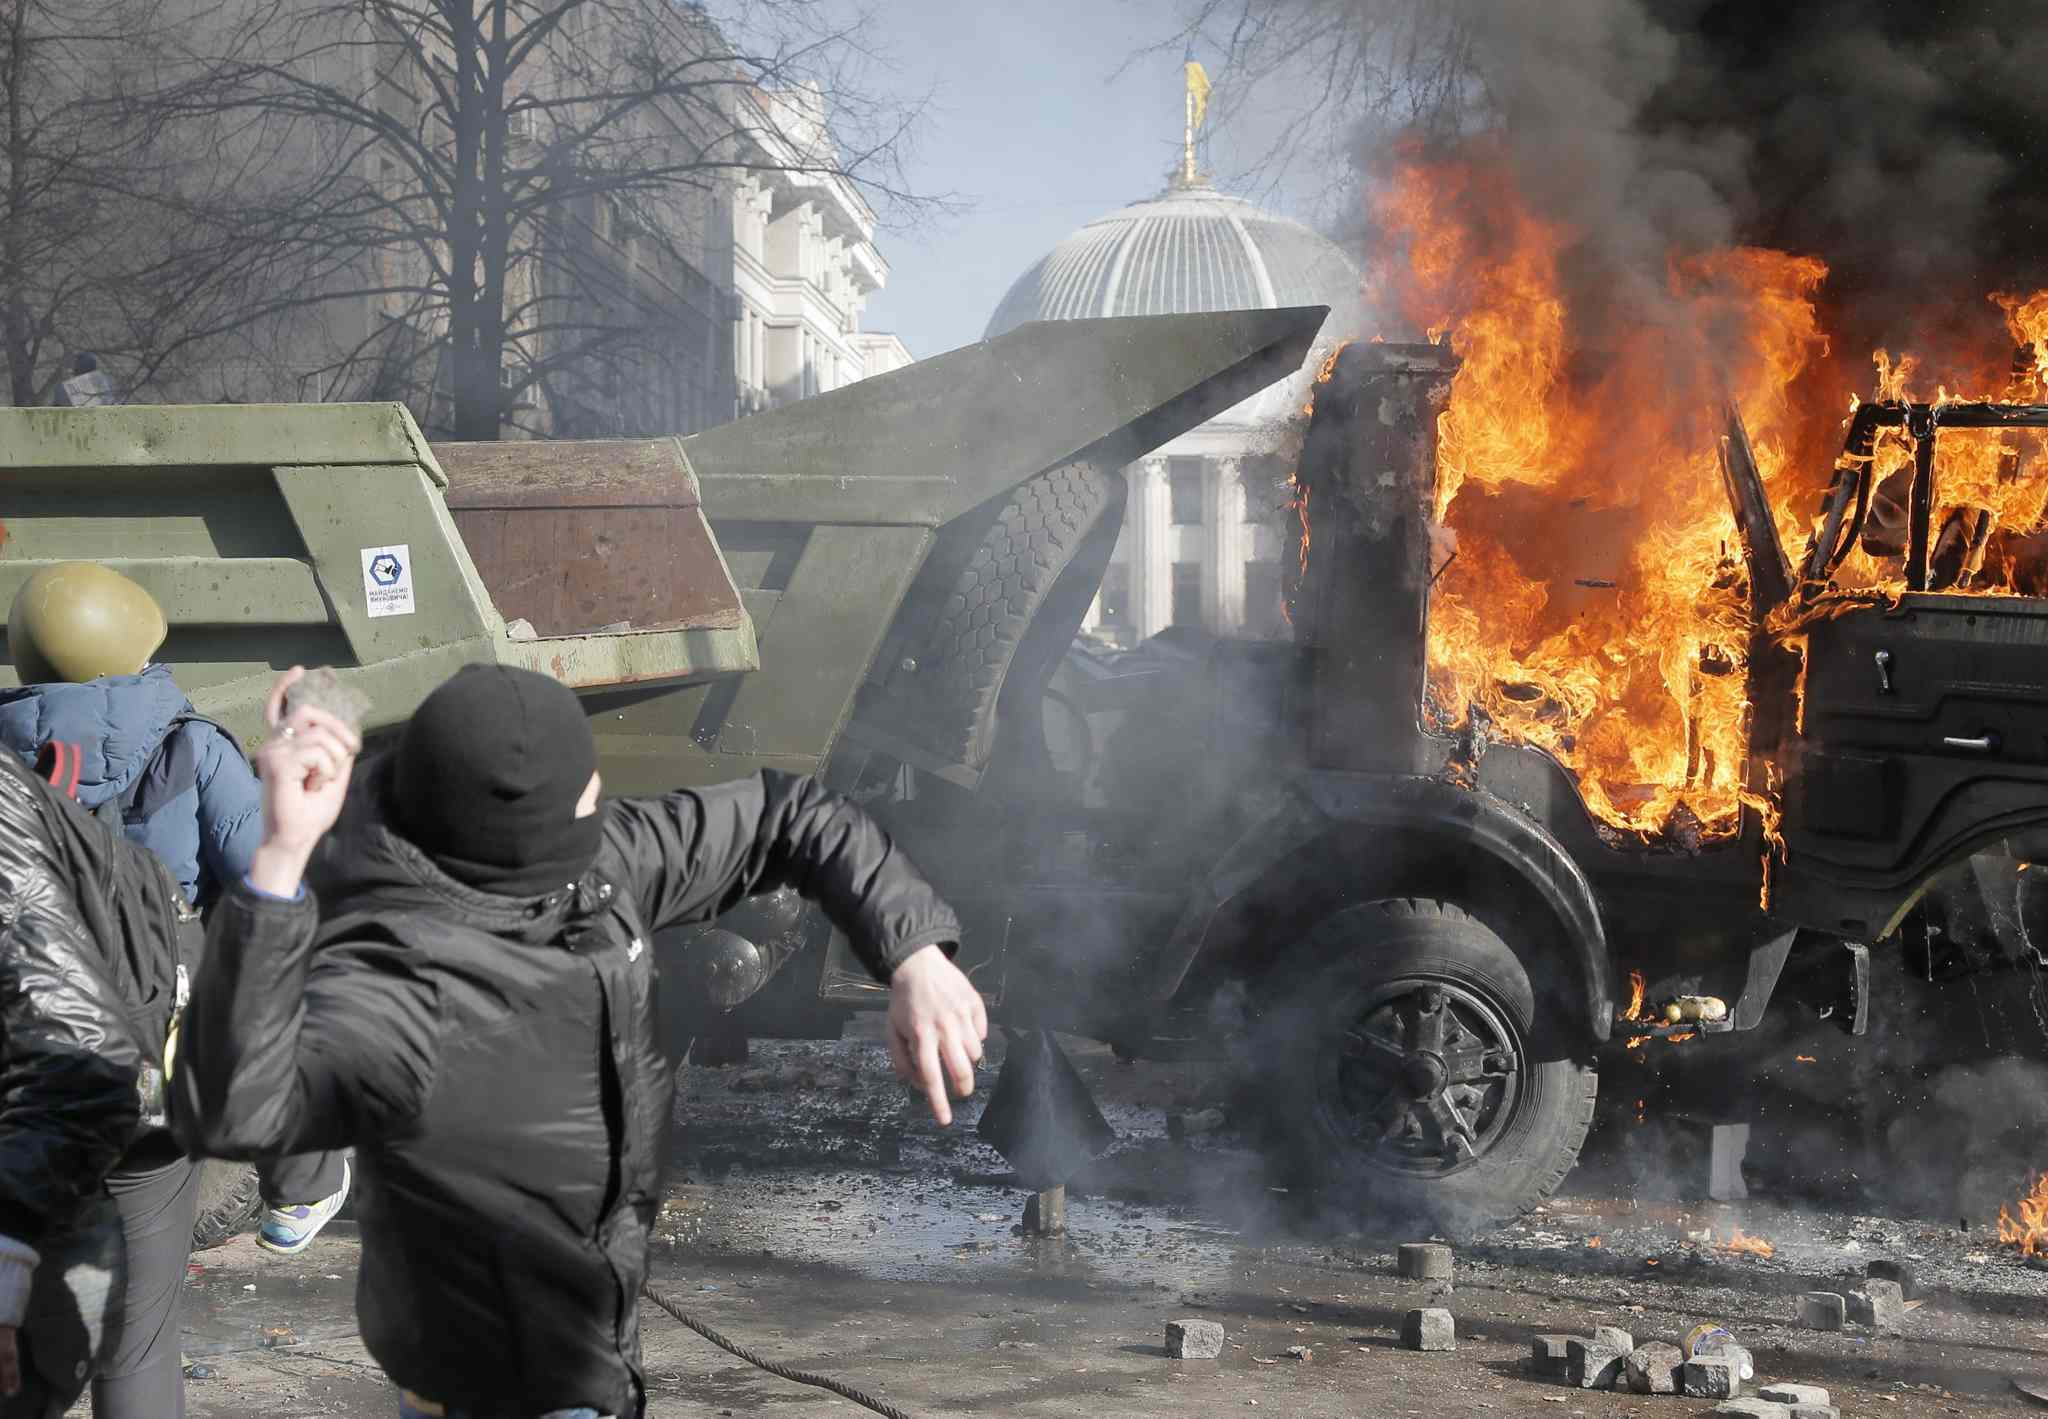 Anti-government protesters clash with riot police outside Ukraine's parliament in Kyiv as protests erupt in flames Tuesday.